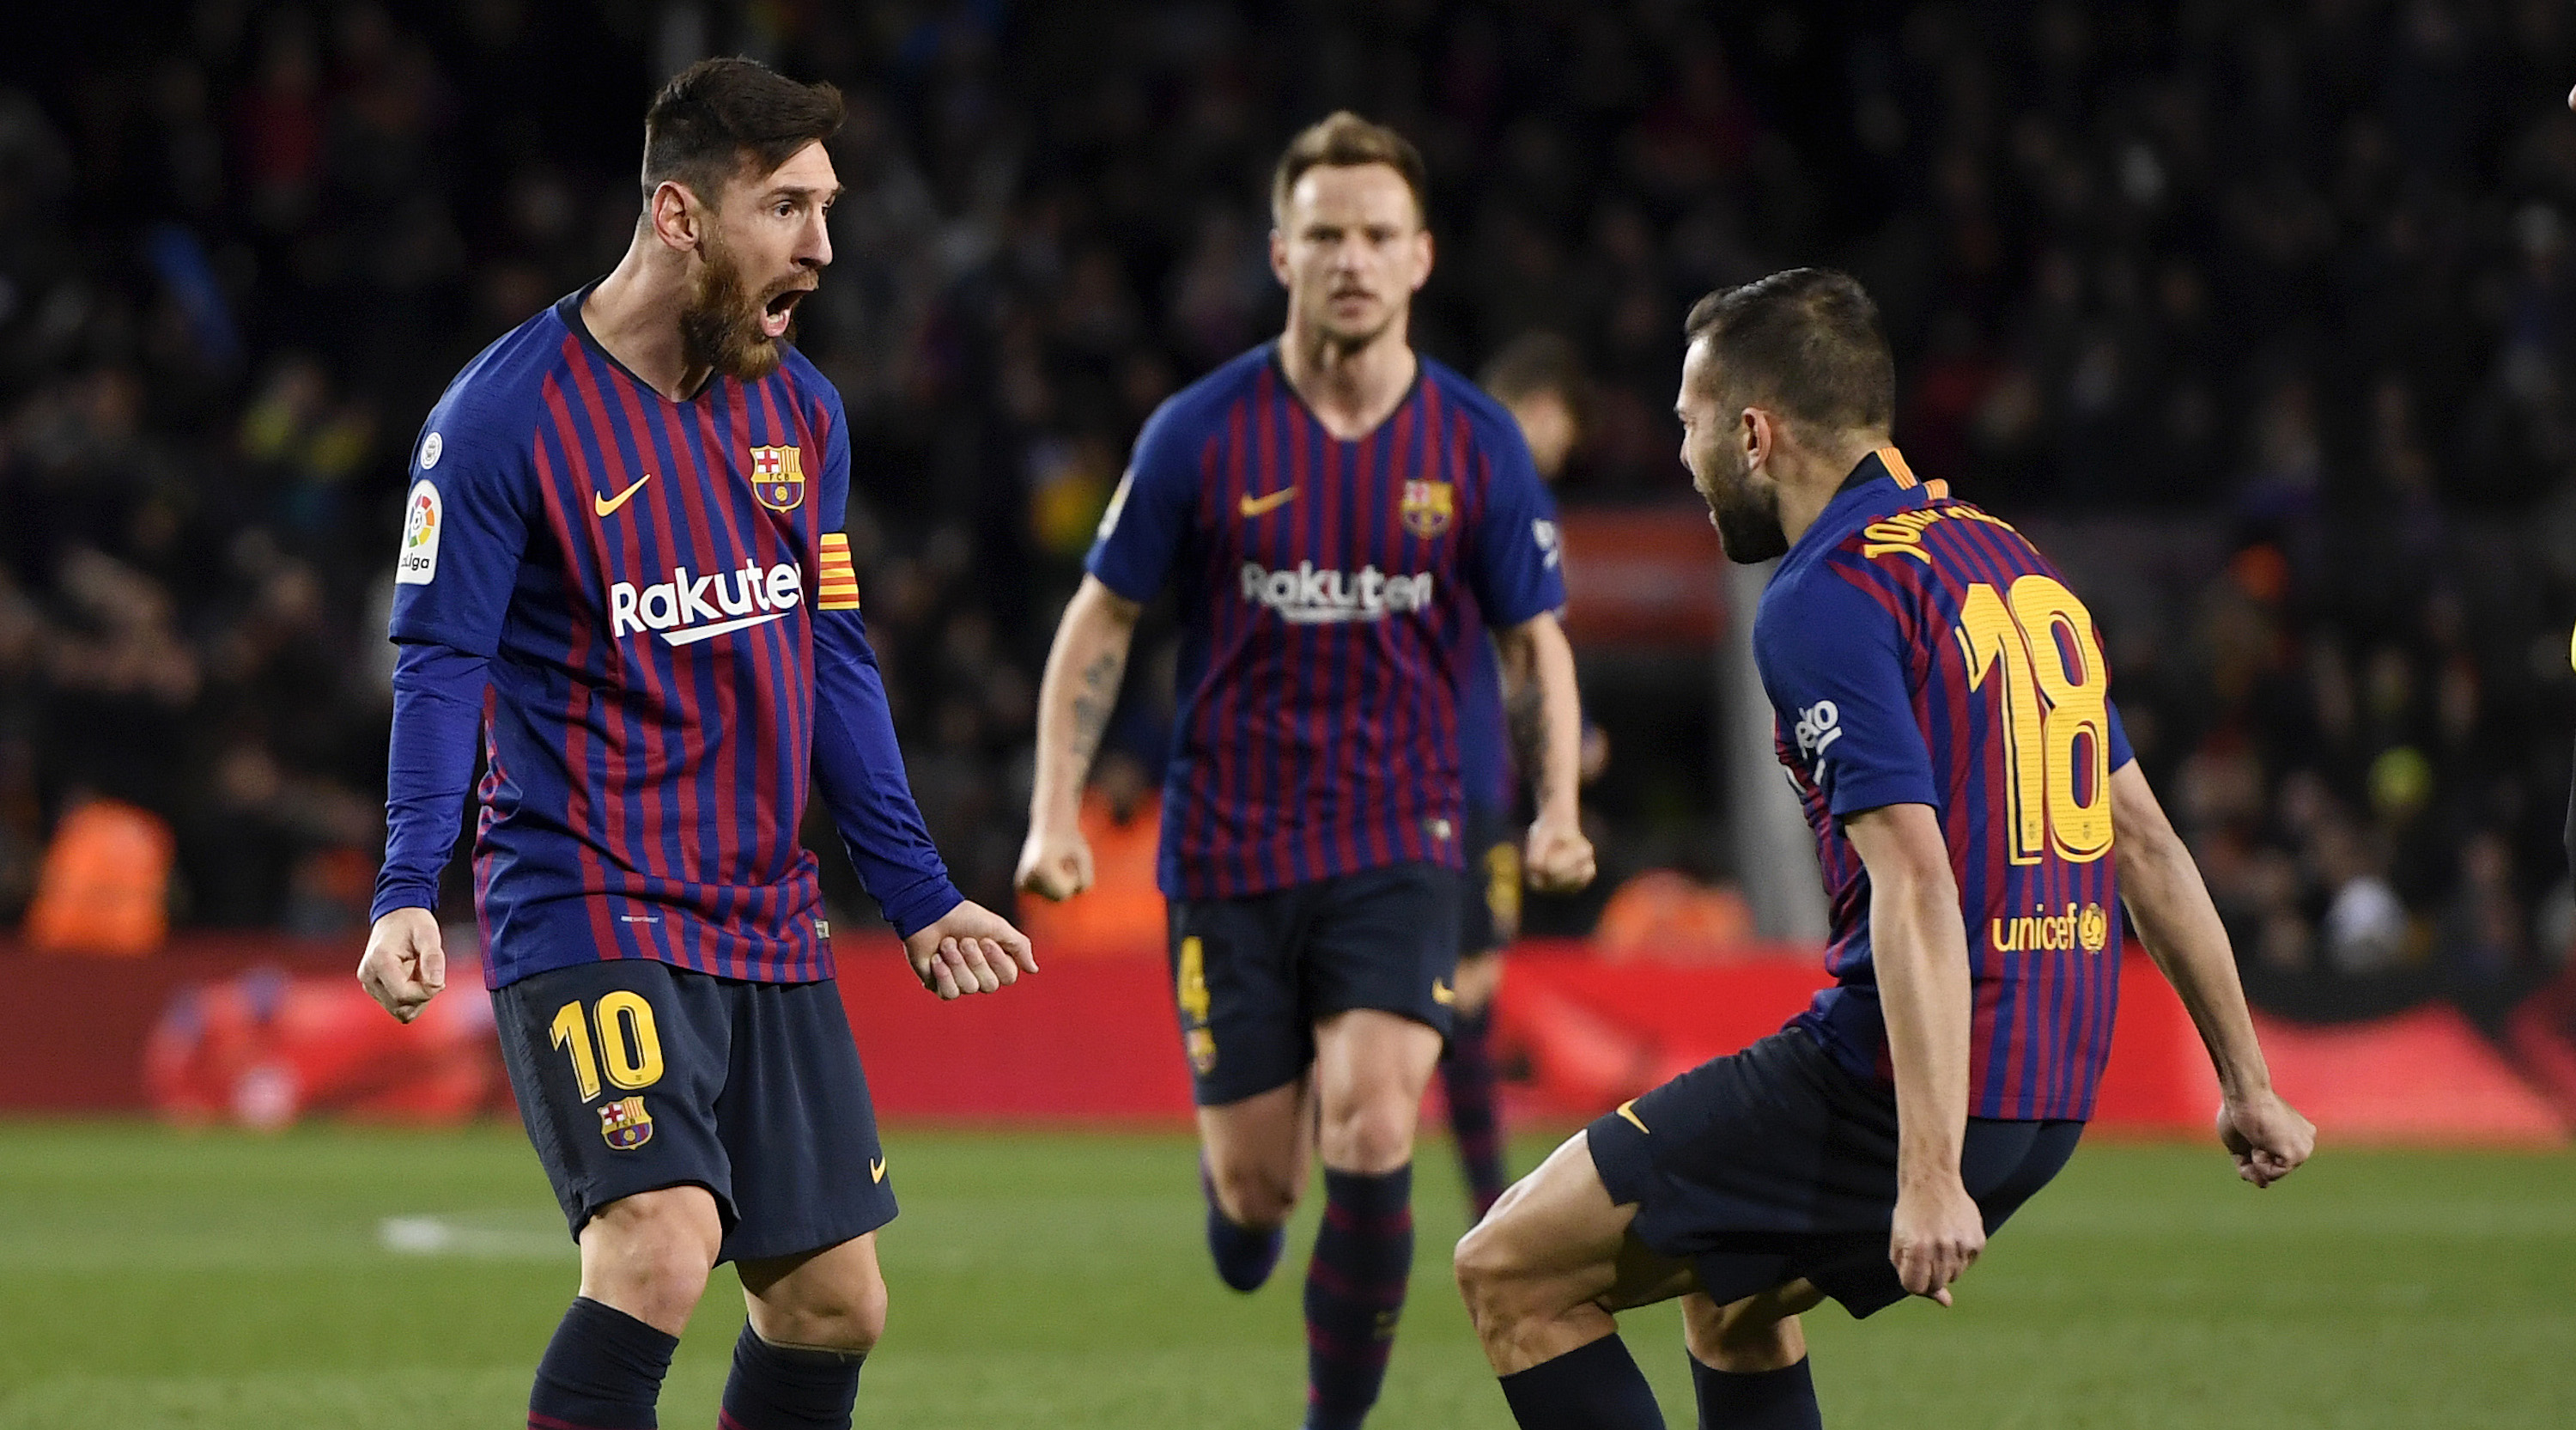 Lionel Messi of Barcelona celebrates with teammates Jordi Alba and Ivan Rakitic after scoring their team's second goal during the La Liga match between FC Barcelona and Valencia CF at Camp Nou on February 2, 2019 in Barcelona, Spain. (Photo by Alex Caparros/Getty Images)